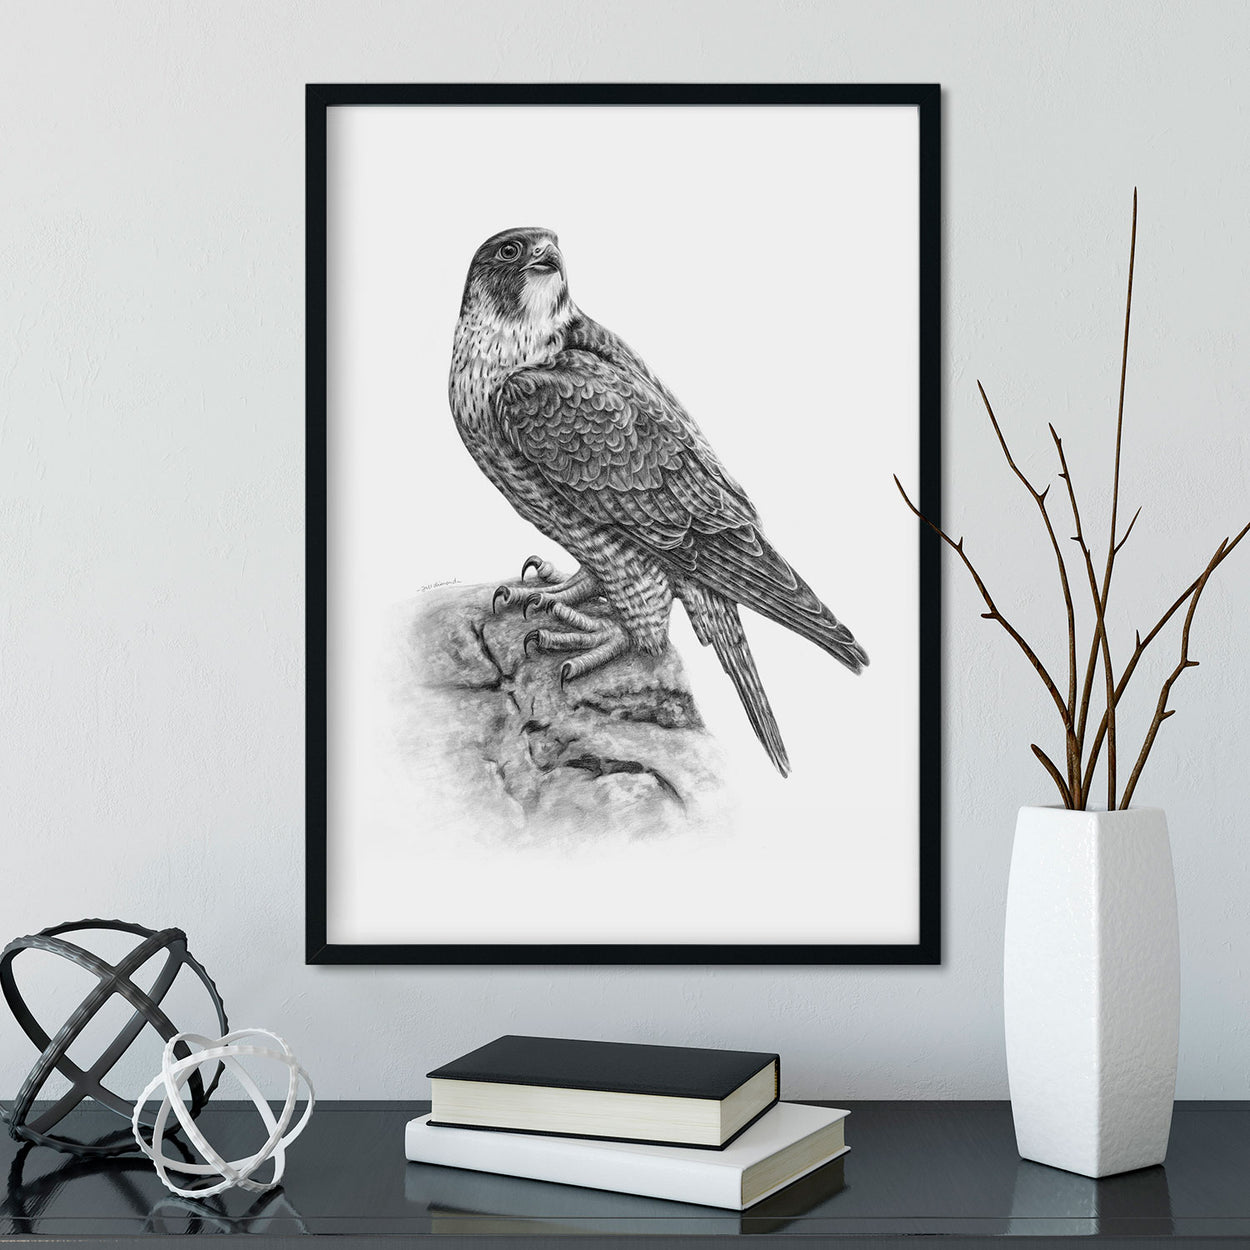 Peregrine Falcon Wall Art in Frame - The Thriving Wild